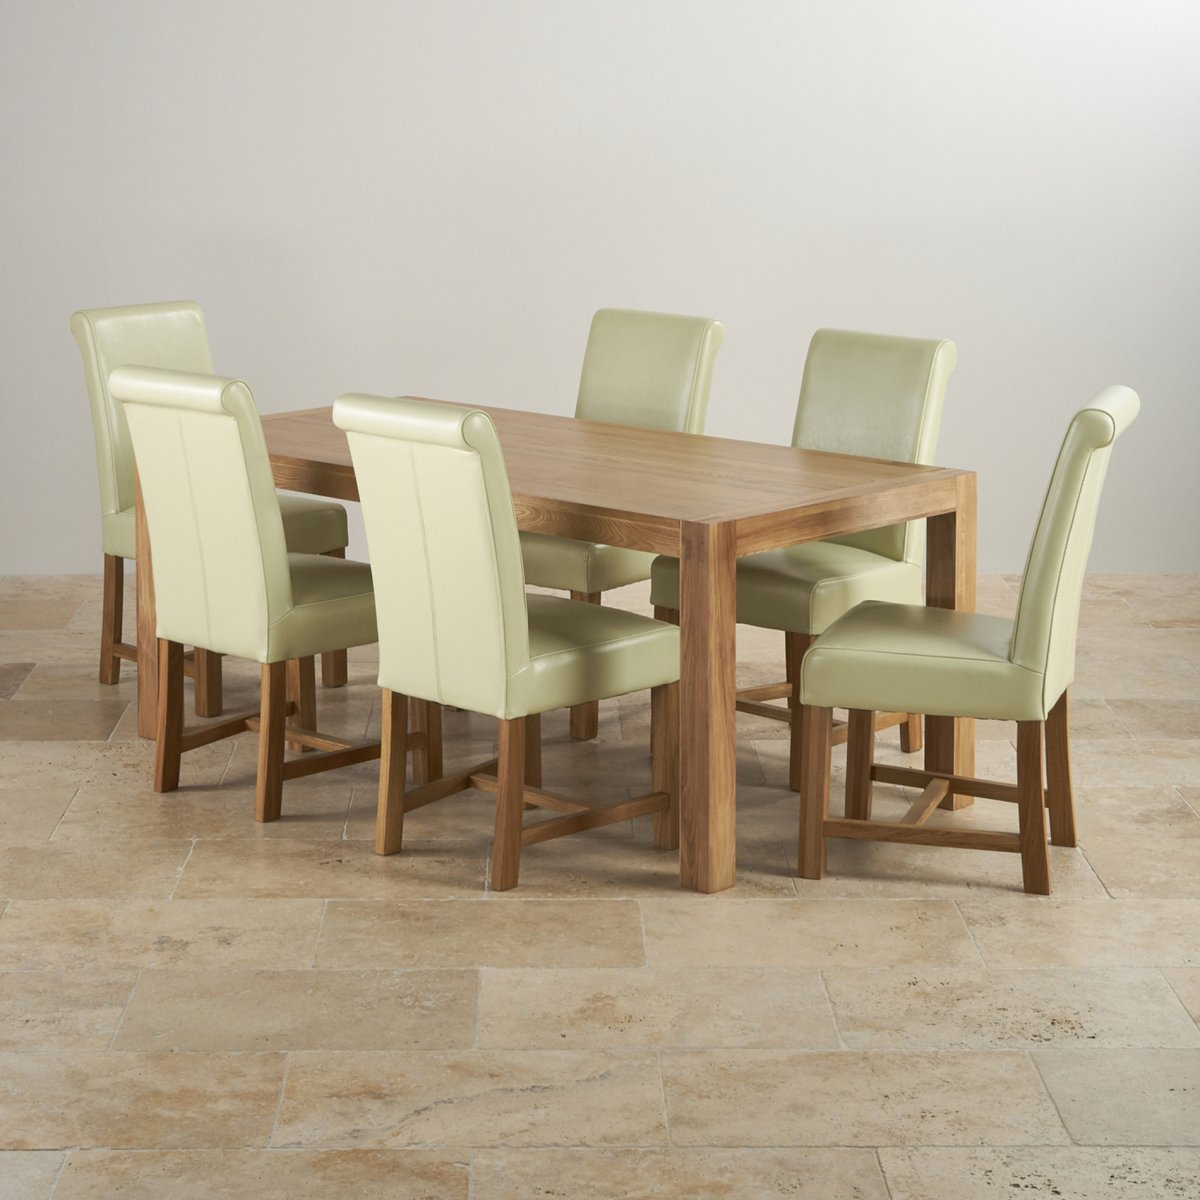 Alto Dining Set in Oak 6ft Table 6 Scroll Back Cream Chairs : alto 6ft dining table6 cream braced scroll back chairs 574edec069fb9946151570107d1f7ced4b9e873c8b029 from www.oakfurnitureland.co.uk size 1200 x 1200 jpeg 146kB